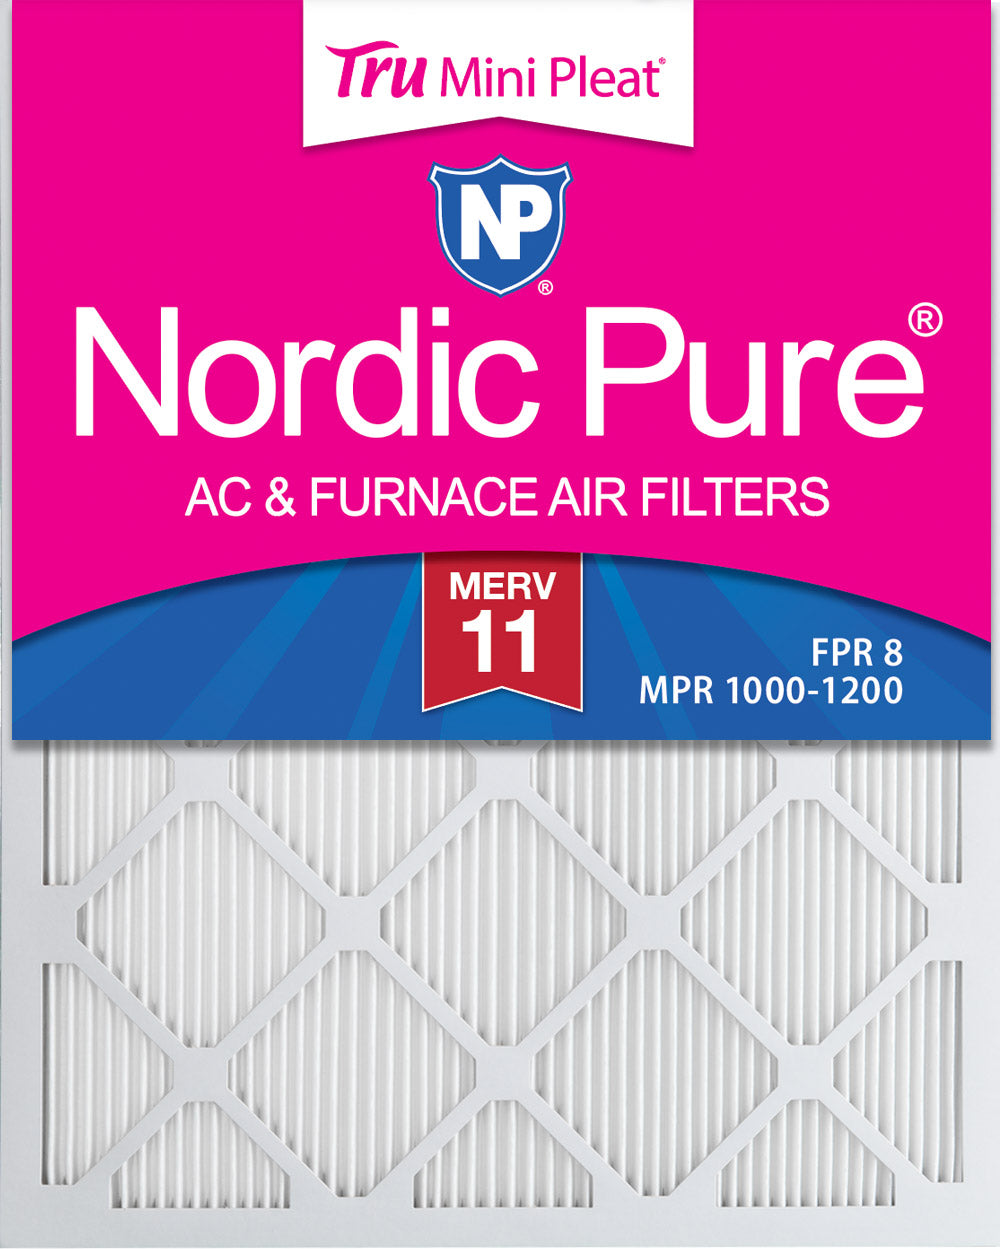 14x30x1 Tru Mini Pleat MERV 11 AC Furnace Air Filters 3 Pack